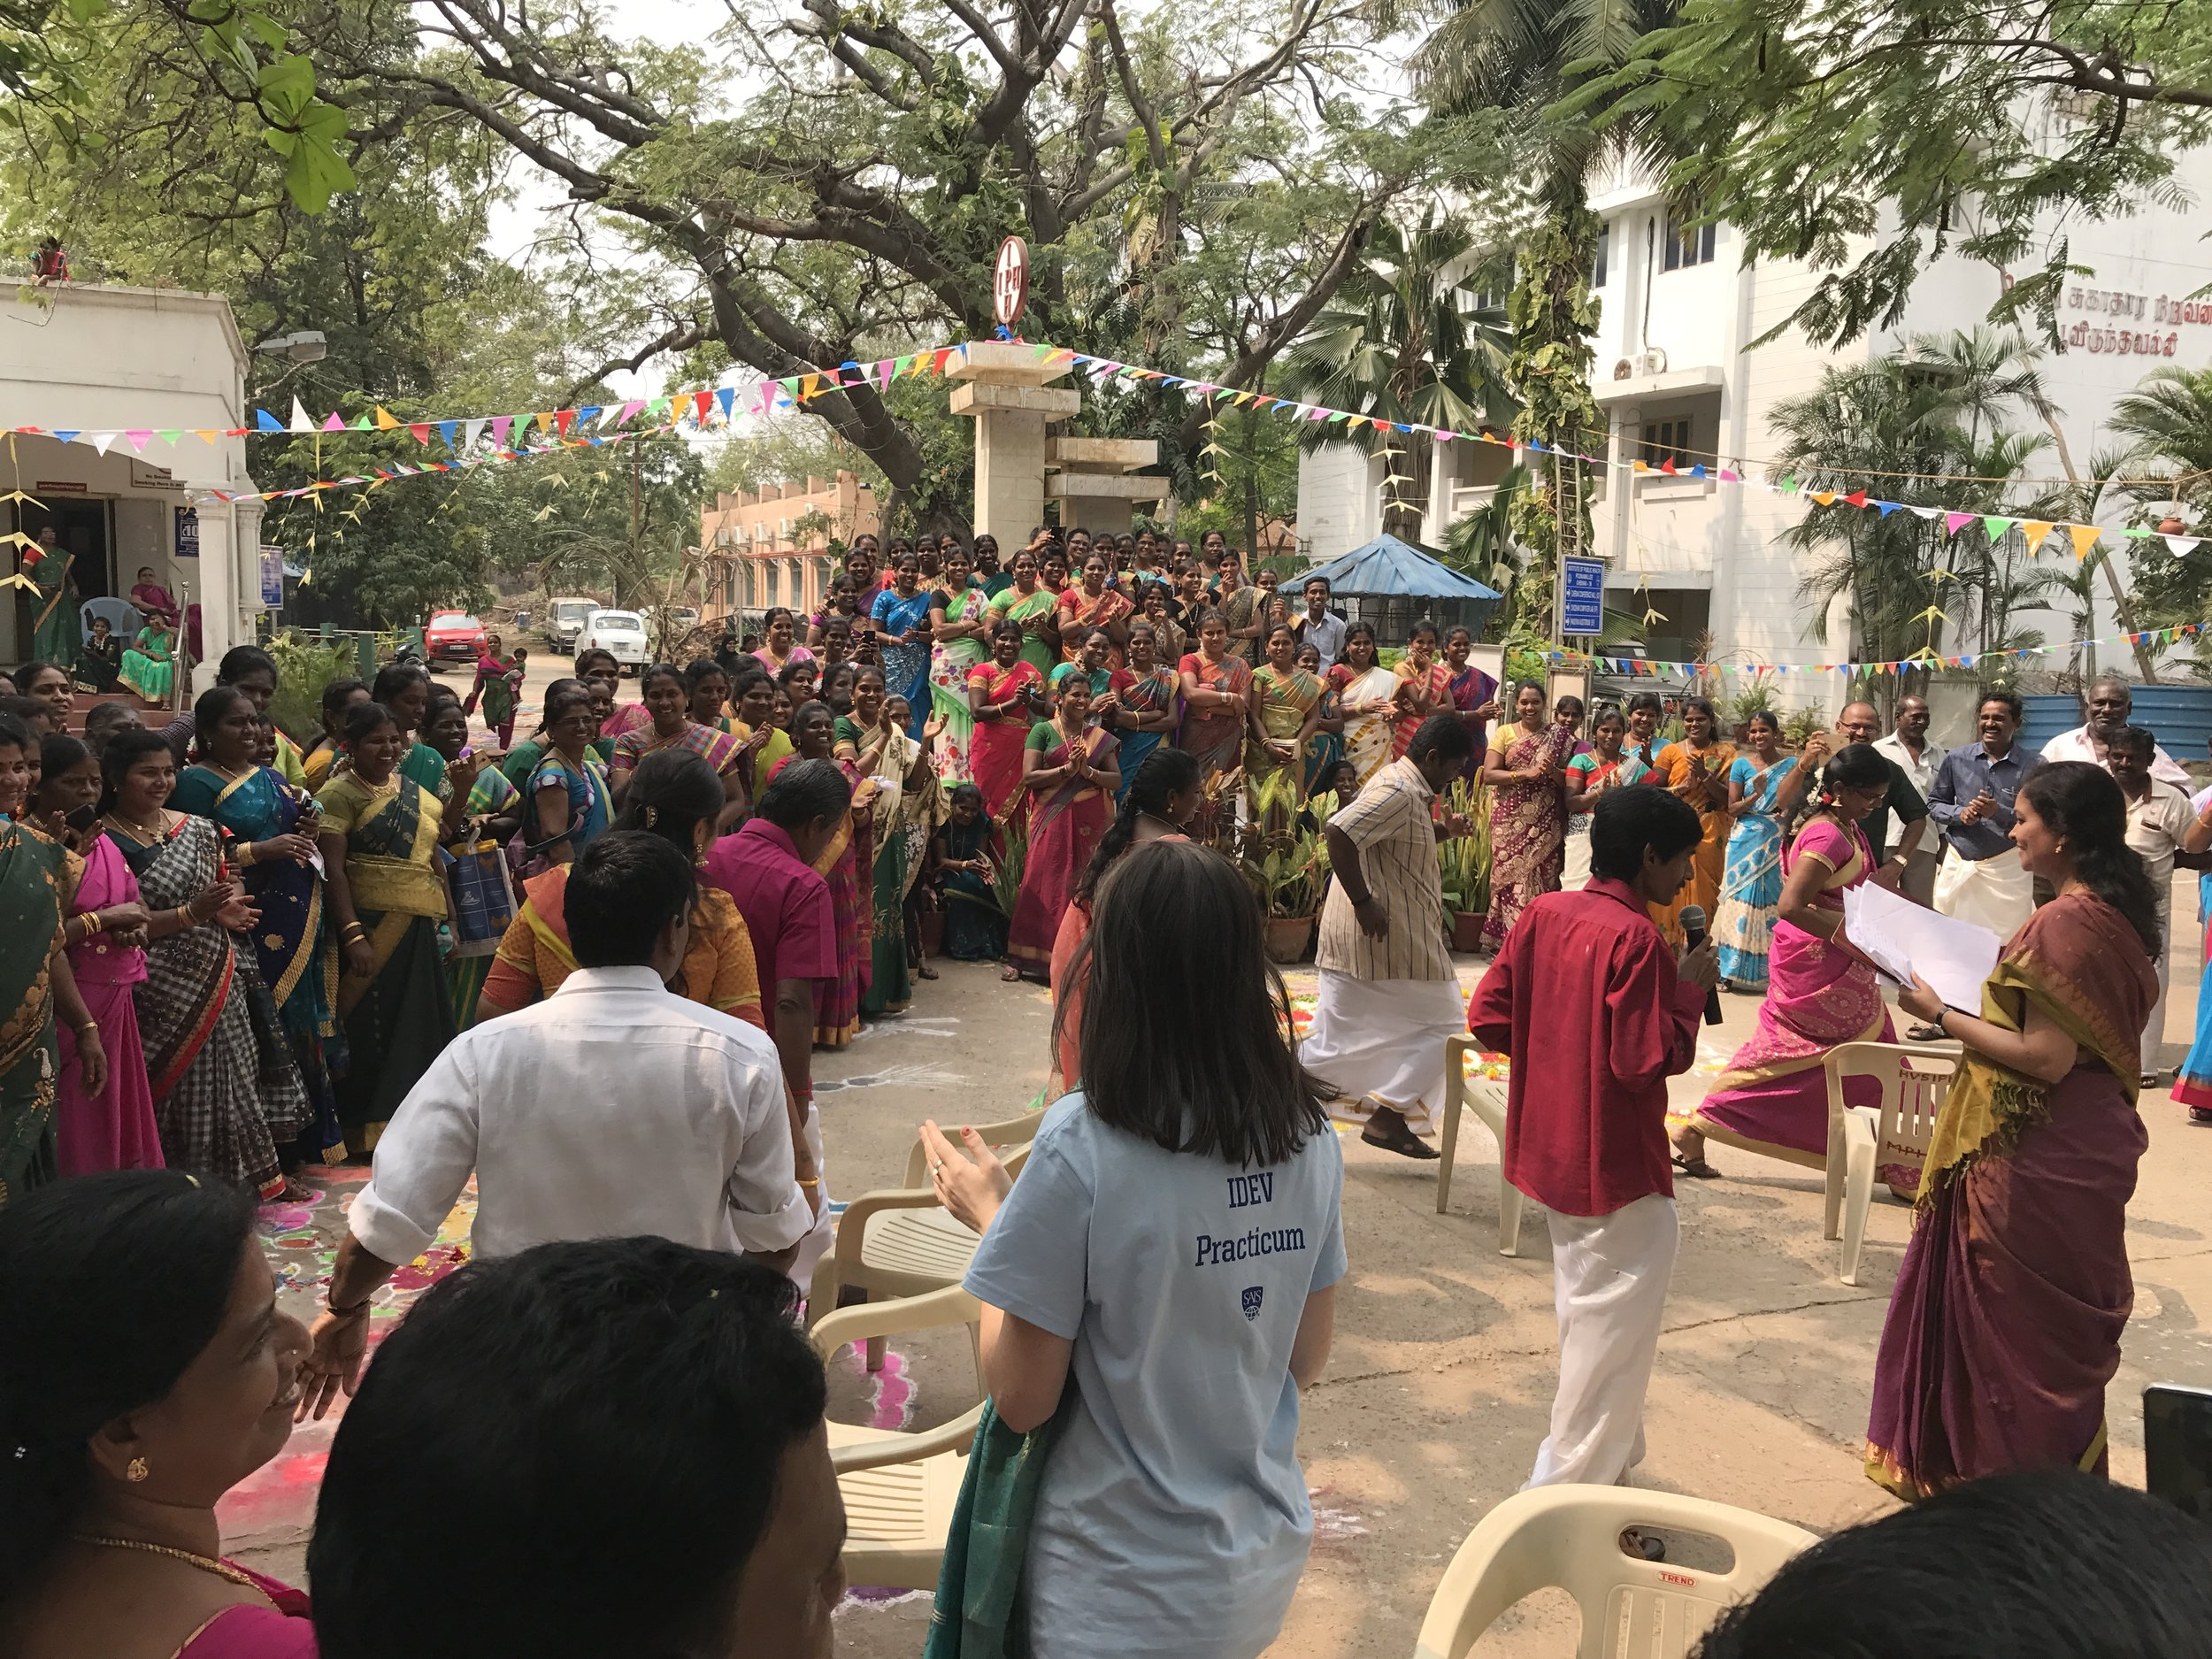 Practicum Team members joined in on the fun and games: playing musical chairs, learning dance moves, and eating the traditional meal of Chakkara Pongal, a delicious sweet rice dish cooked in milk with raisins and spices.